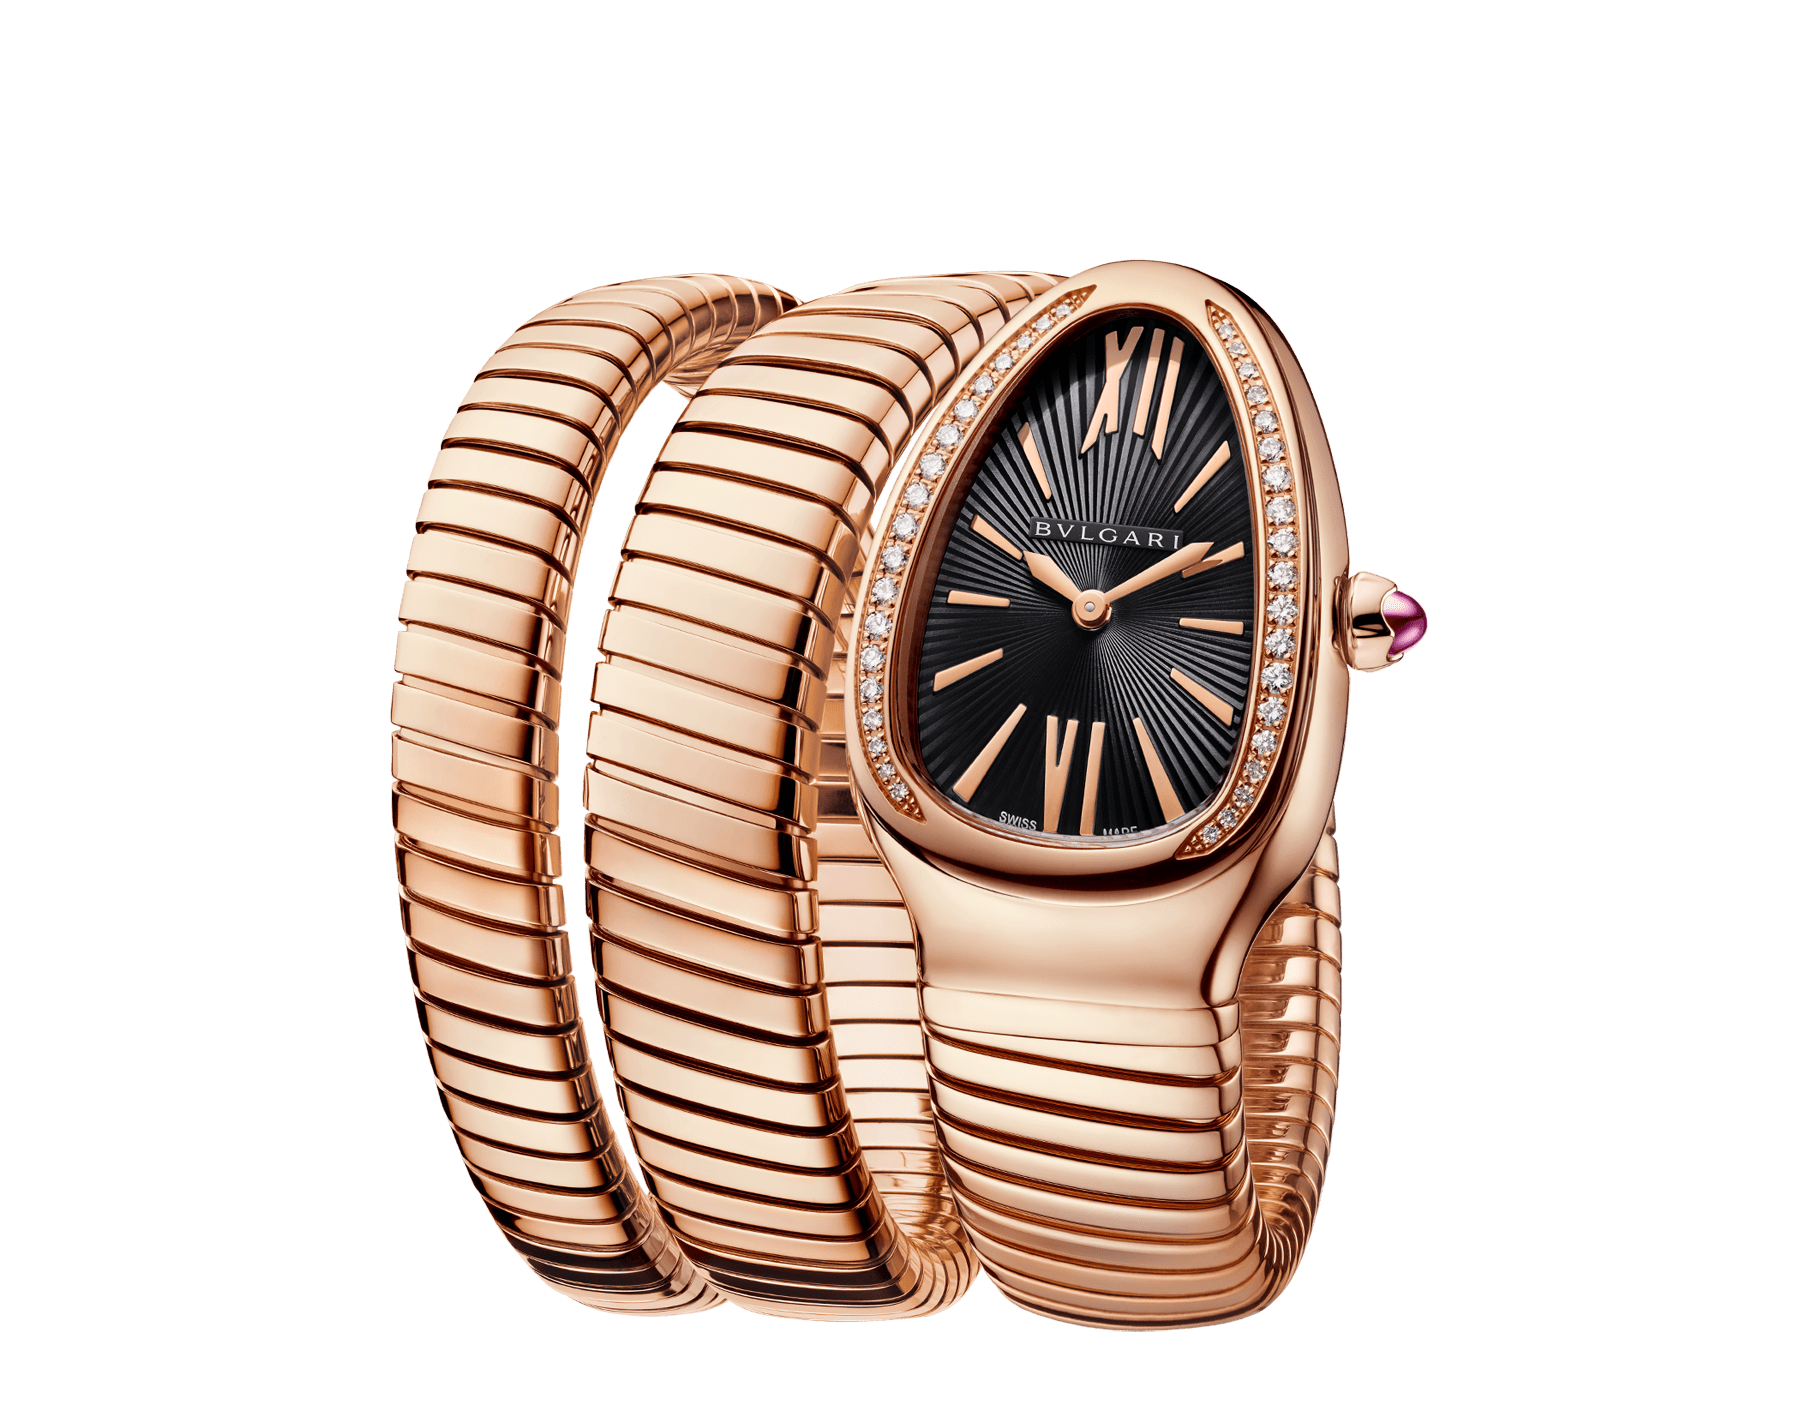 Serpenti Tubogas double spiral watch with 18 kt rose gold case set with brilliant cut diamonds, black opaline dial and 18 kt rose gold bracelet. 101814 image 2